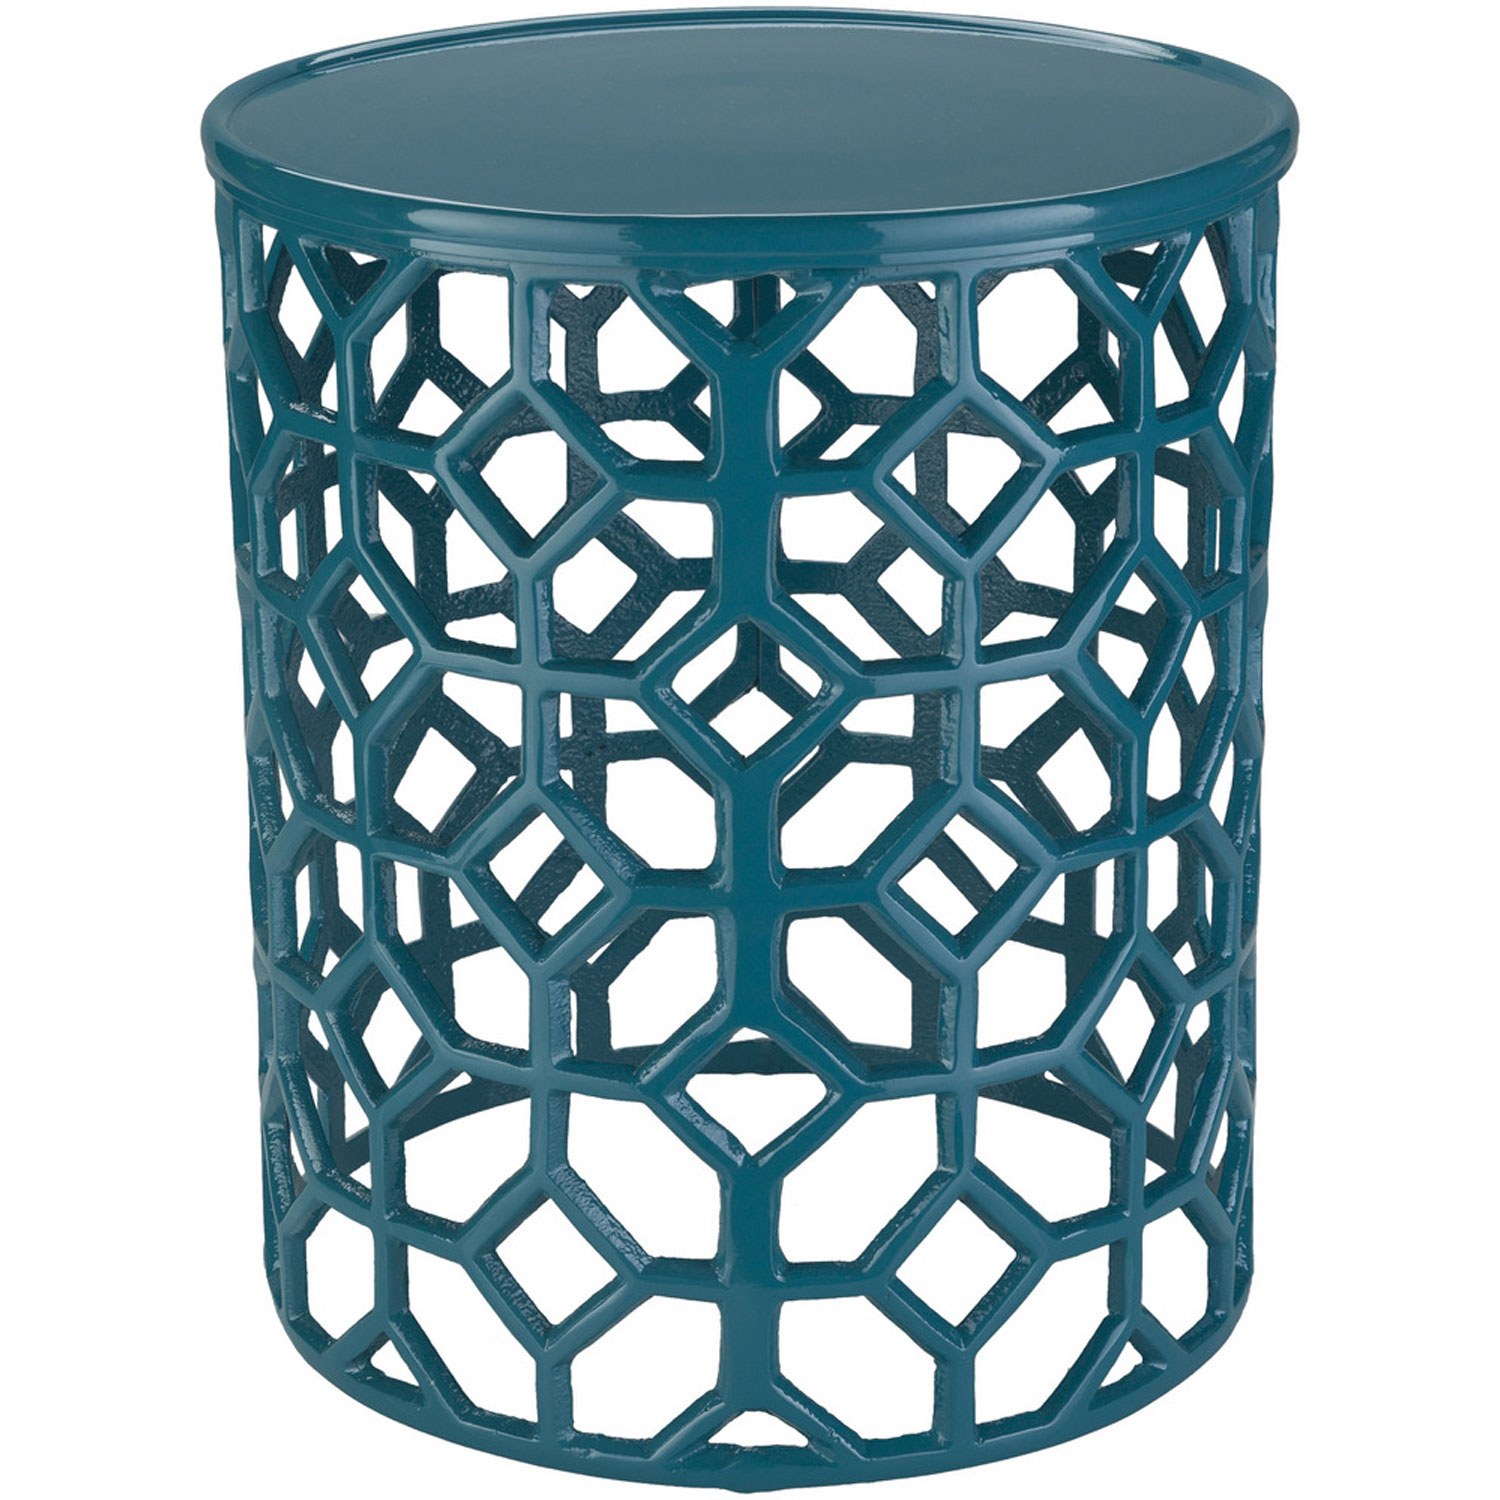 surya hale blue accent table bellacor teal hover zoom round silver mirror counter height dining chairs tiffany floor lamp clearance and white umbrella piece patio set ikea storage